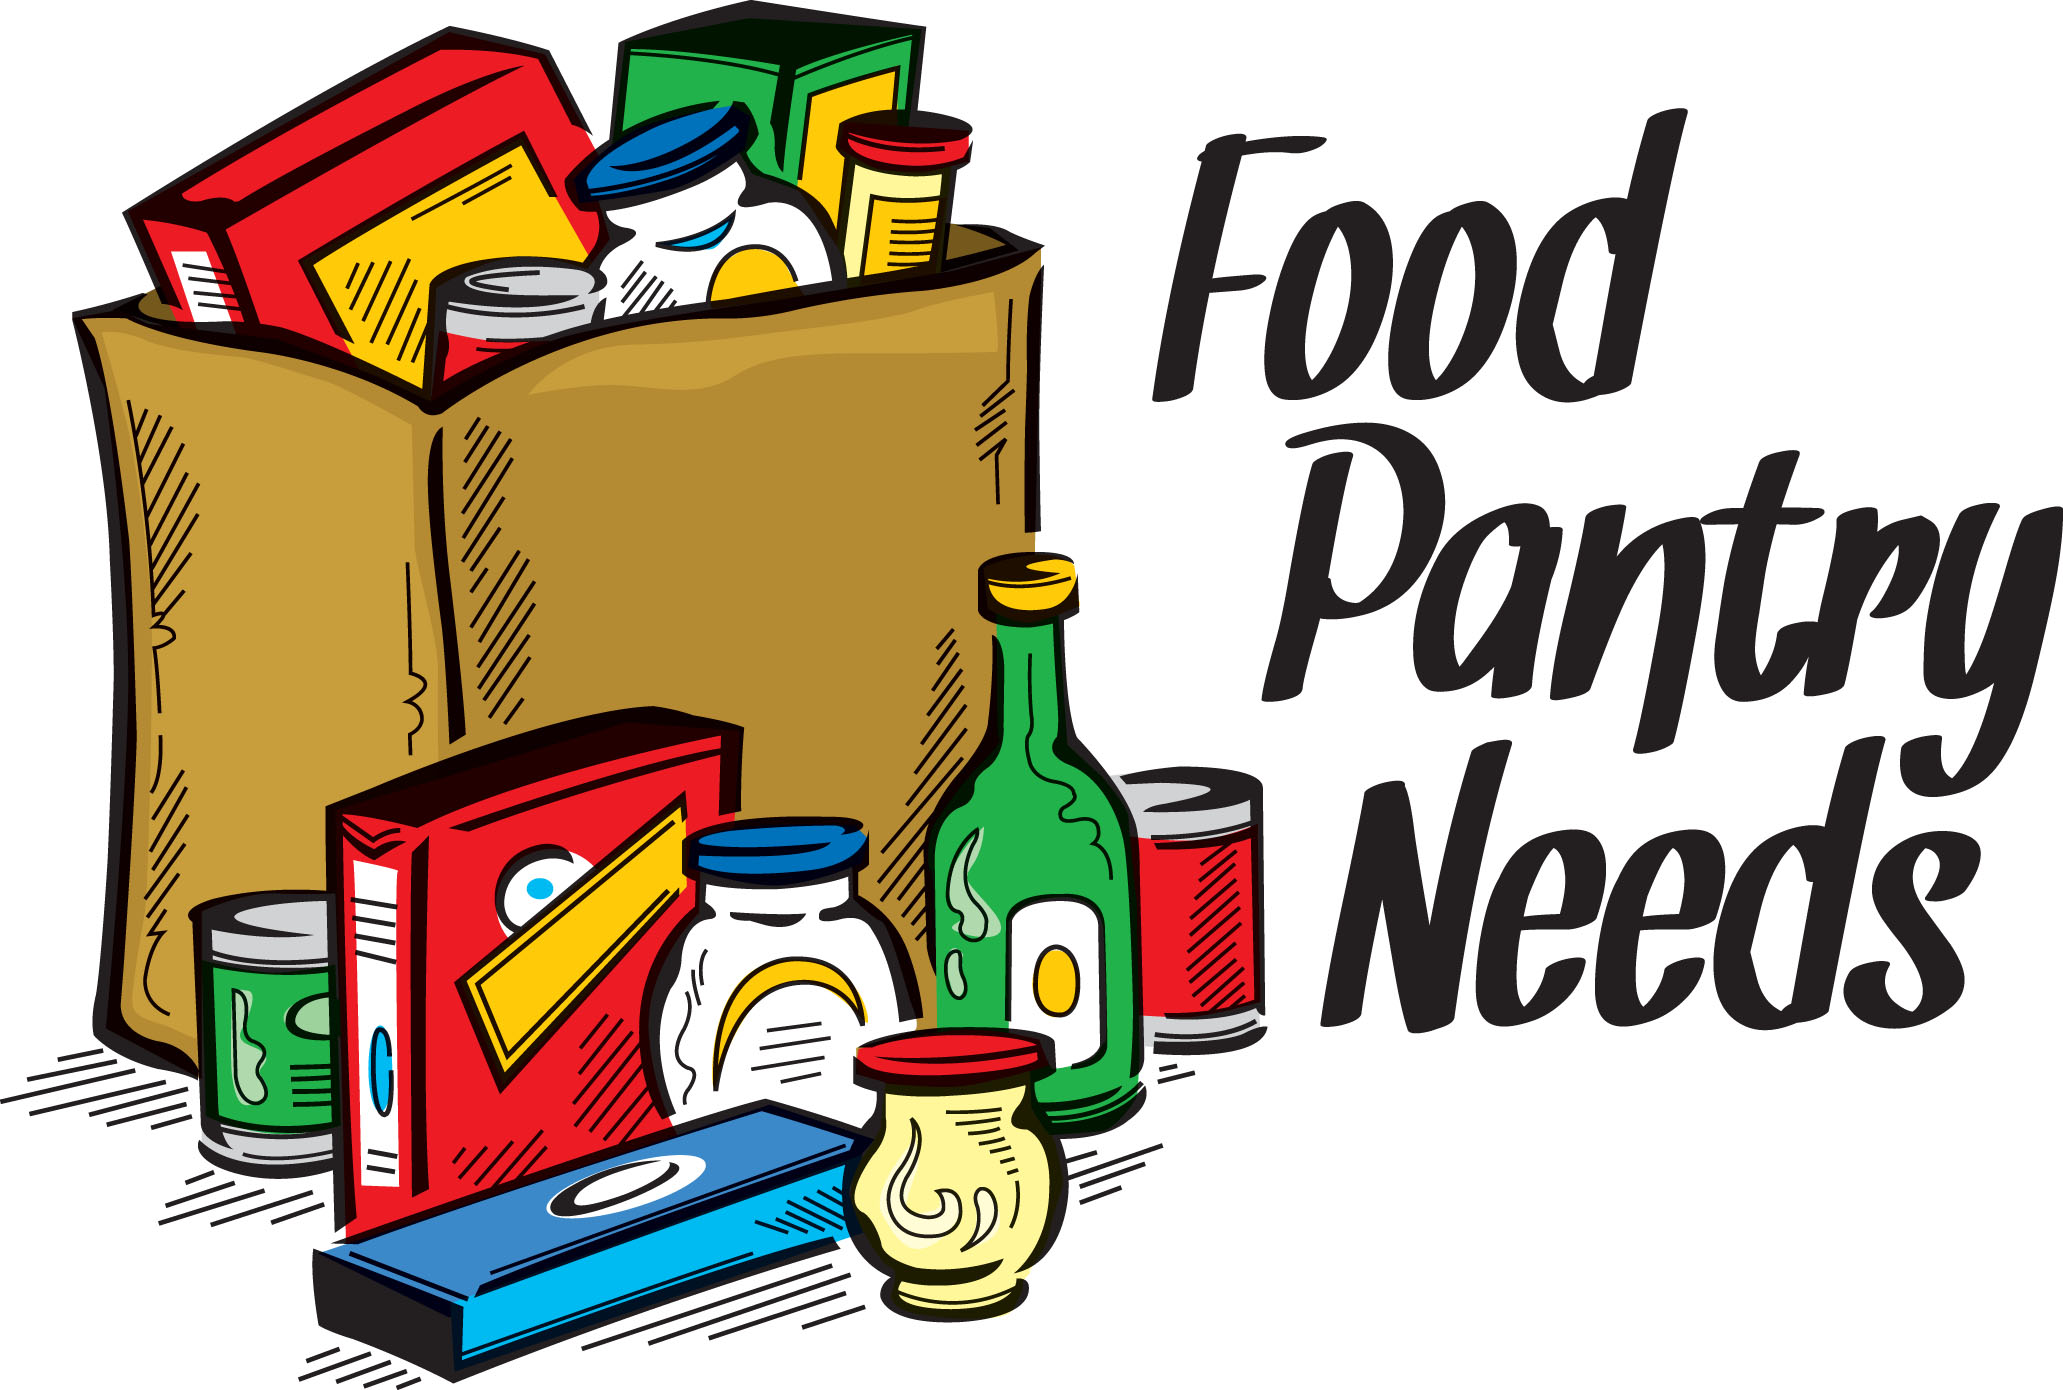 Free clipart food pantry graphic royalty free library Free Food Bank Cliparts, Download Free Clip Art, Free Clip Art on ... graphic royalty free library